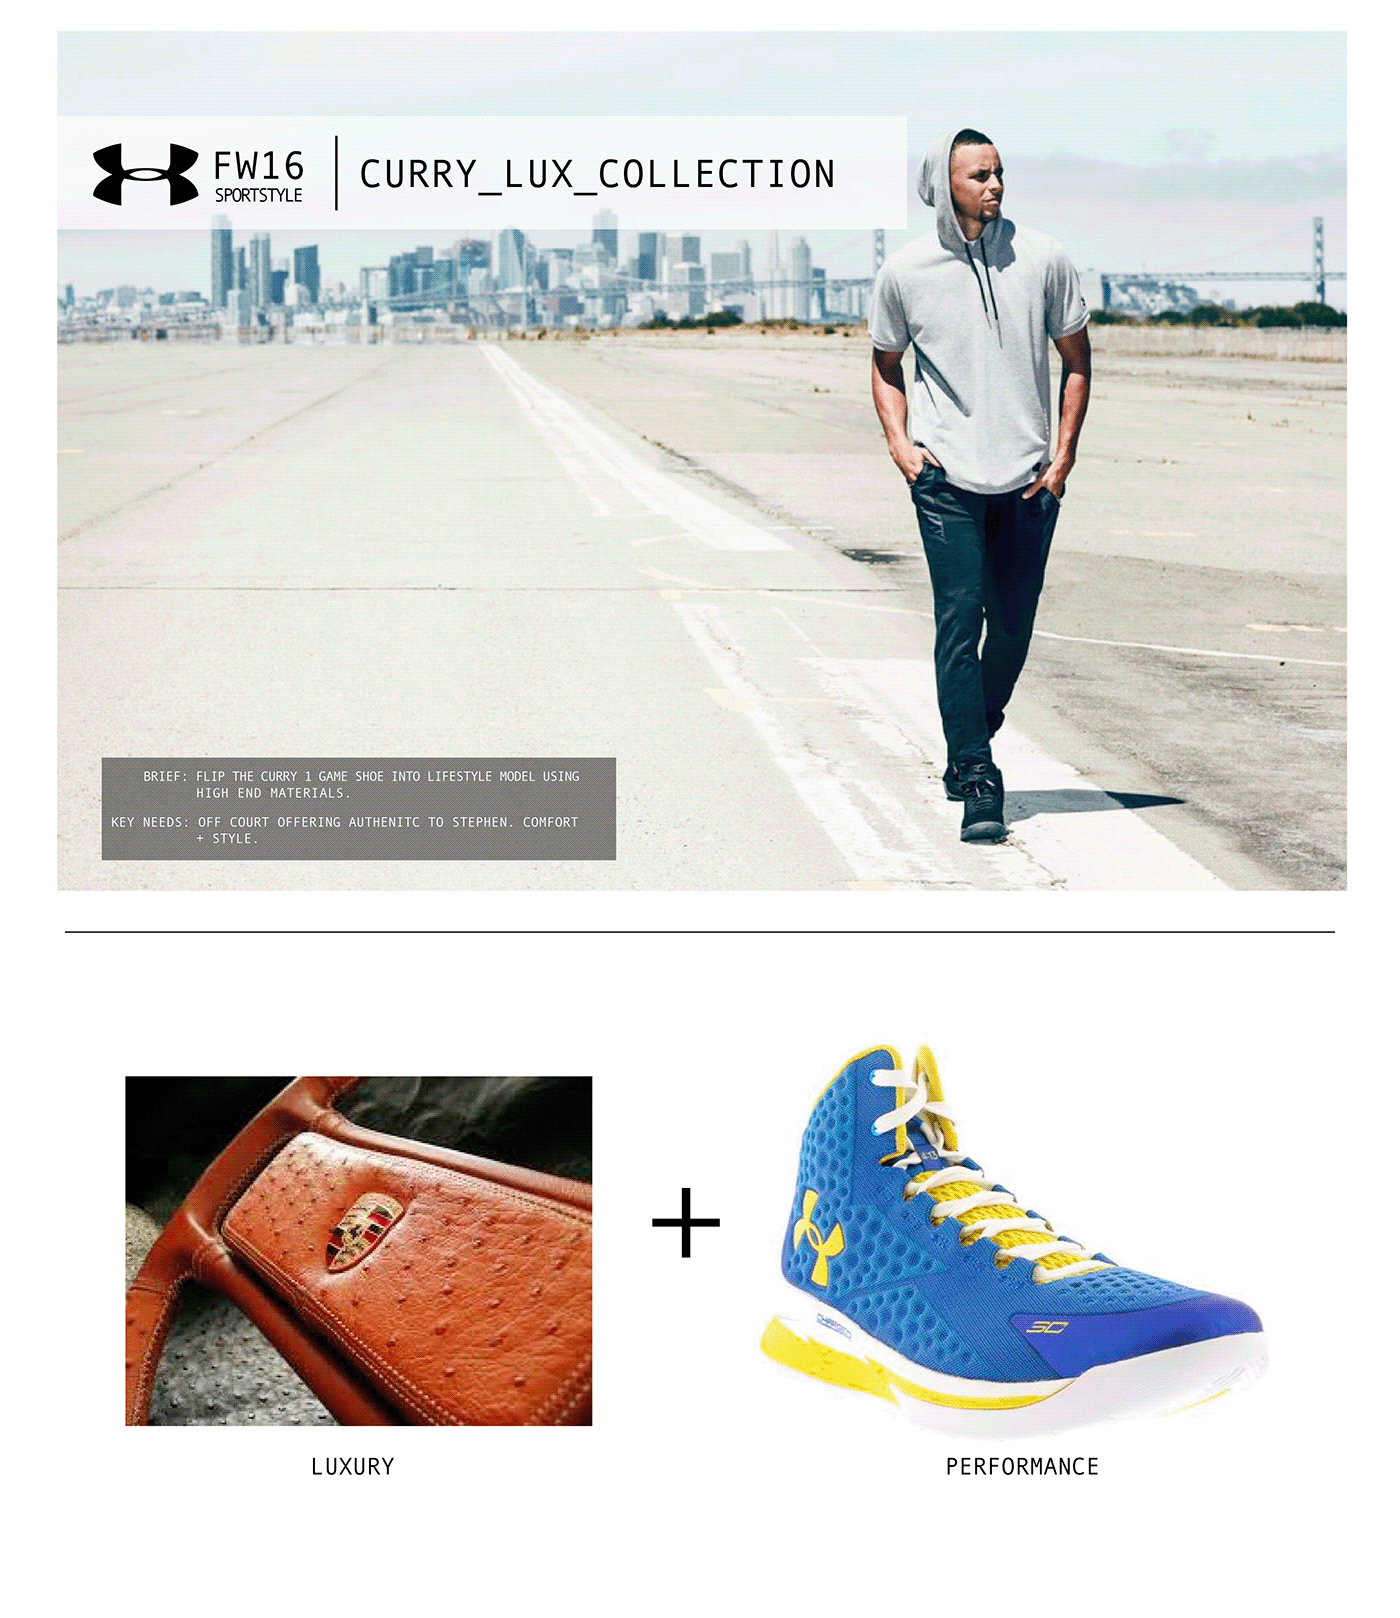 basketball,casual,curry,ed wallace,lifestyle,premium,Under Armour